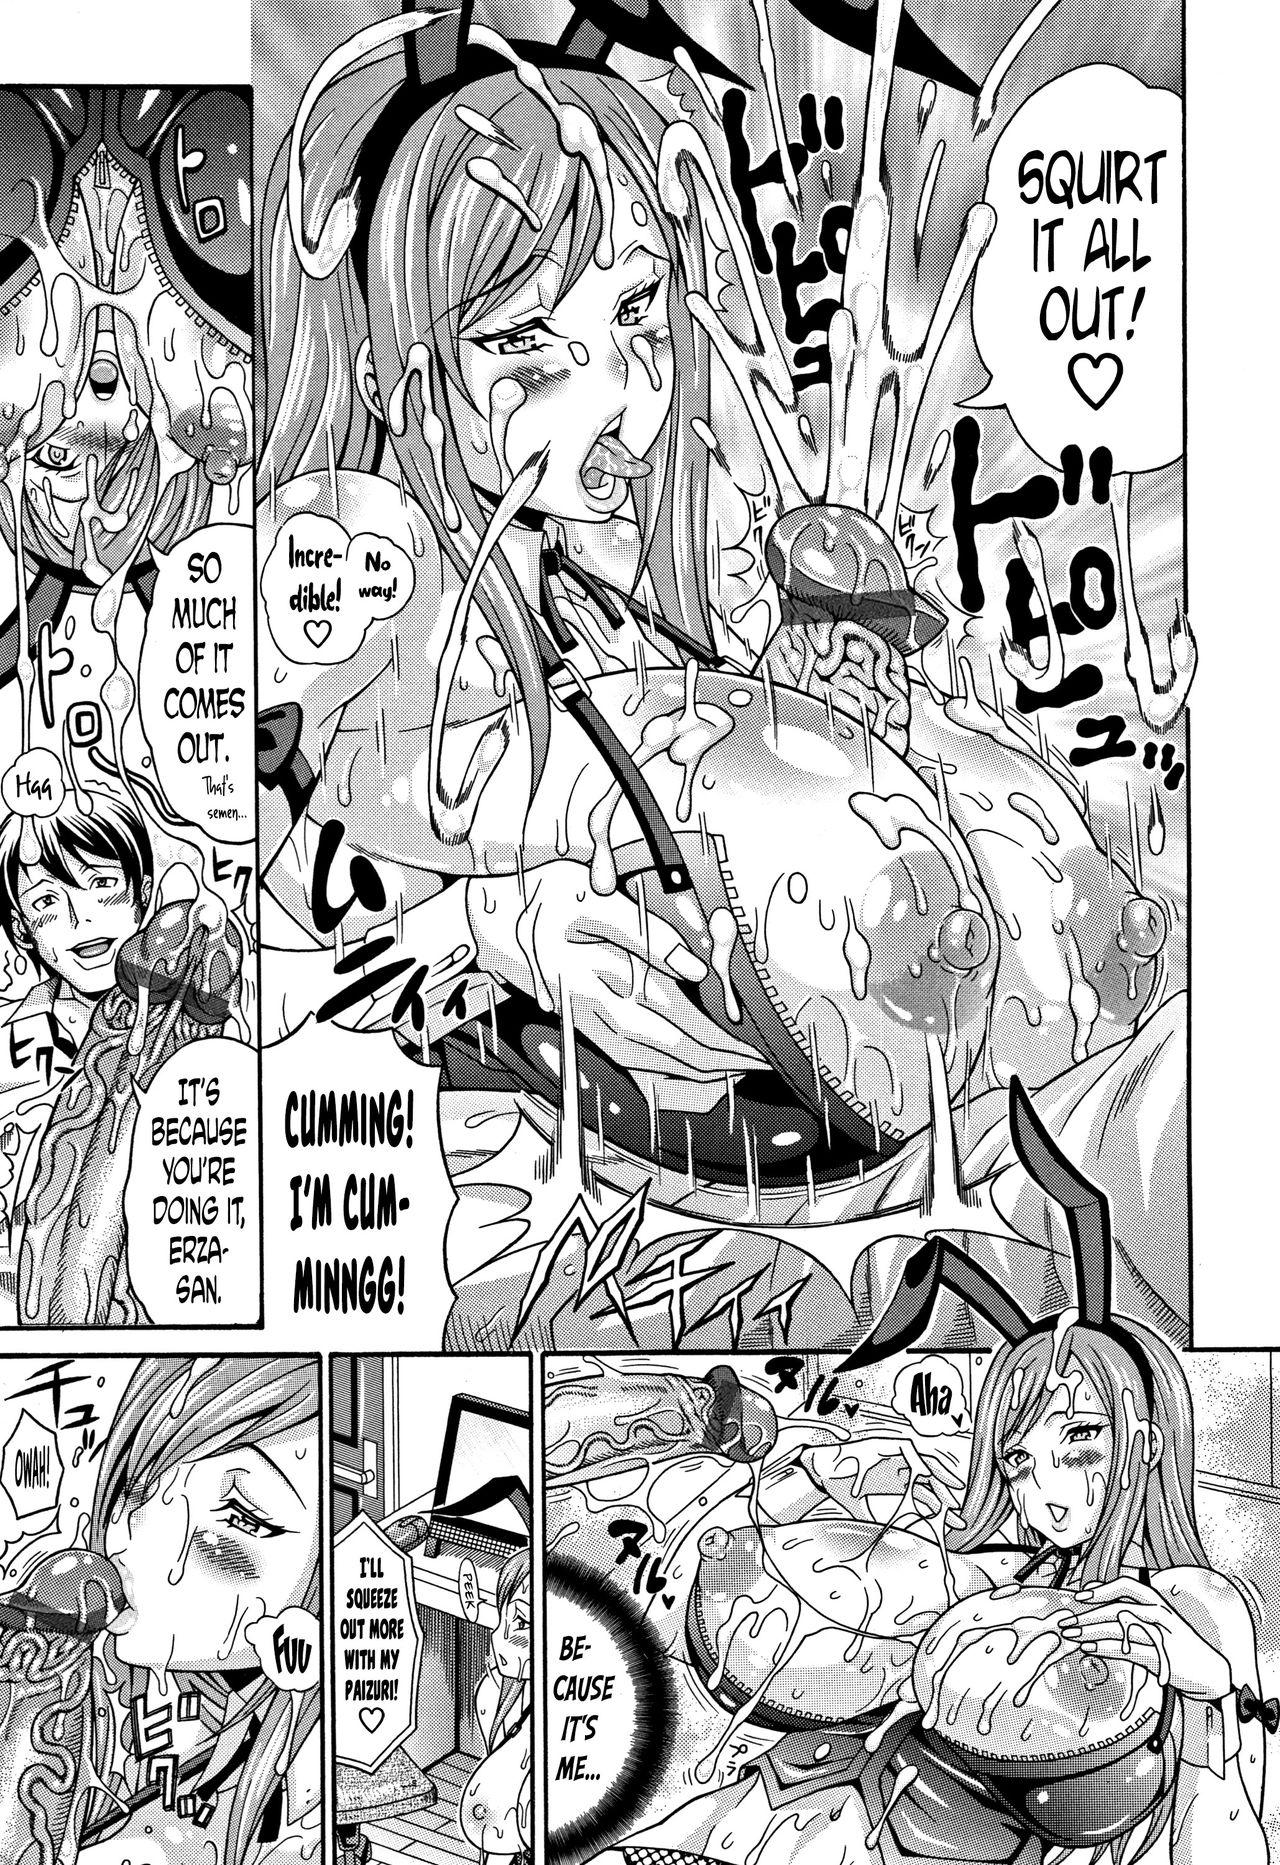 [Andou Hiroyuki] Mamire Chichi - Sticky Tits Feel Hot All Over. Ch.1-7 [English] [doujin-moe.us] 29